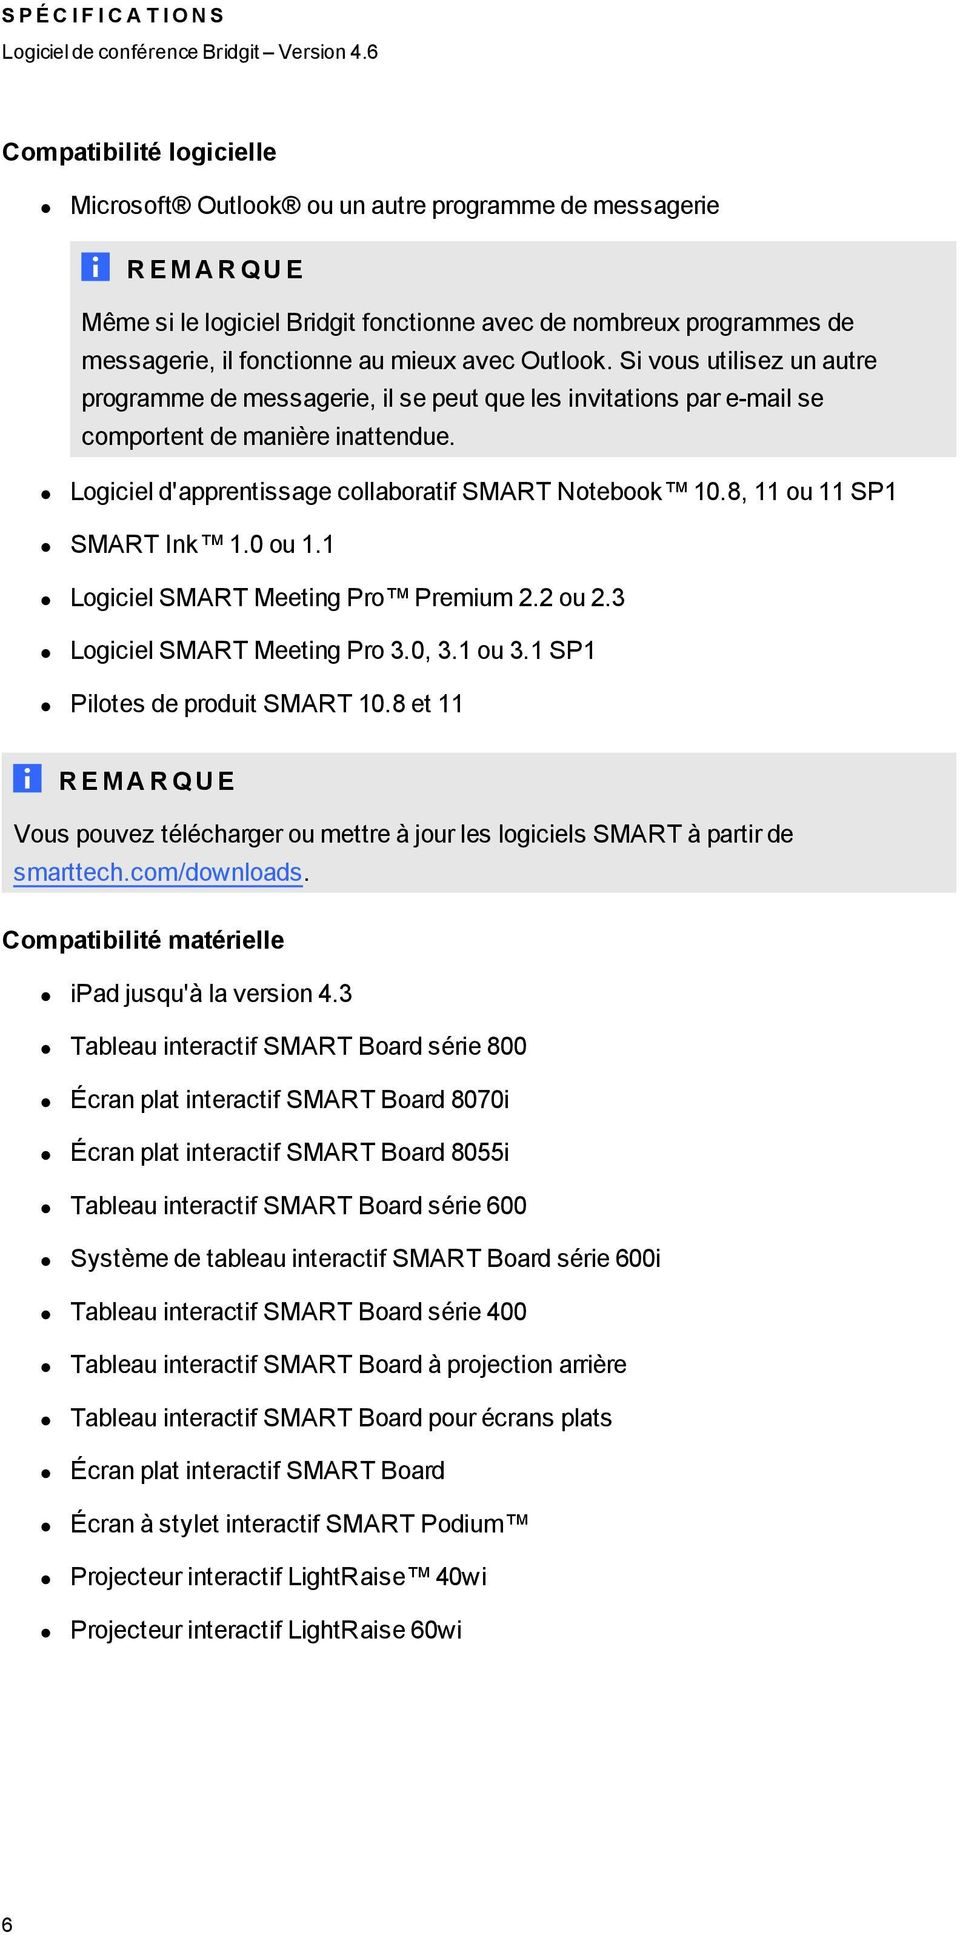 8, 11 ou 11 SP1 SMART Ink 1.0 ou 1.1 Logiciel SMART Meeting Pro Premium 2.2 ou 2.3 Logiciel SMART Meeting Pro 3.0, 3.1 ou 3.1 SP1 Pilotes de produit SMART 10.